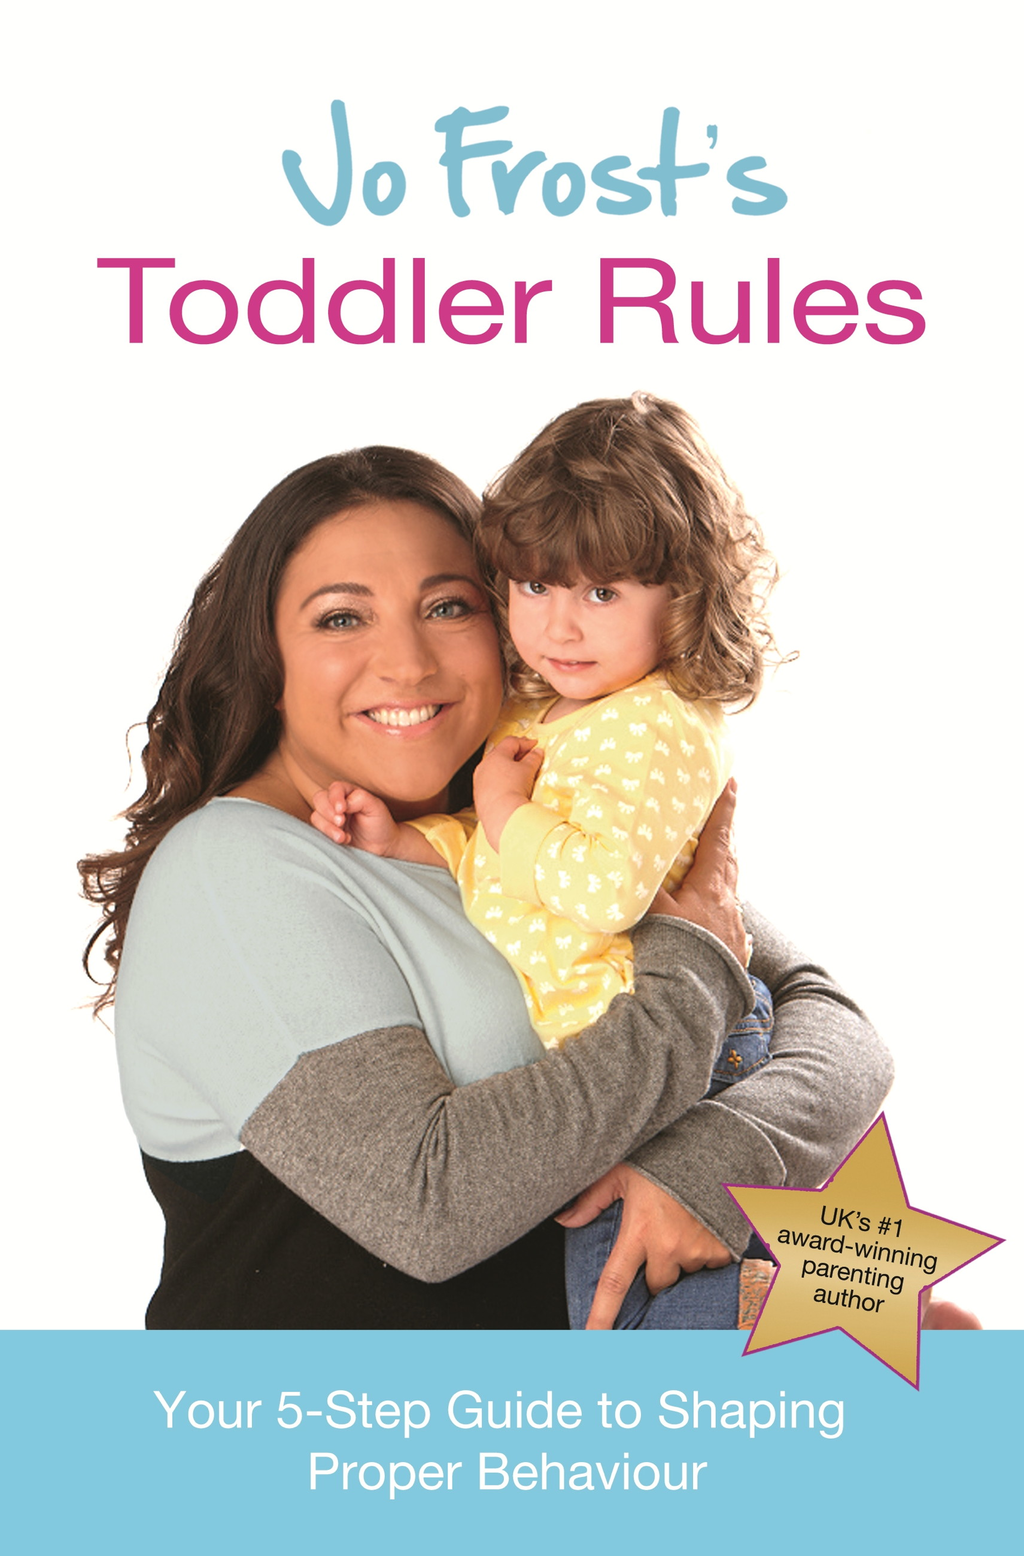 Jo Frost's Toddler Rules Your 5-Step Guide to Shaping Proper Behaviour